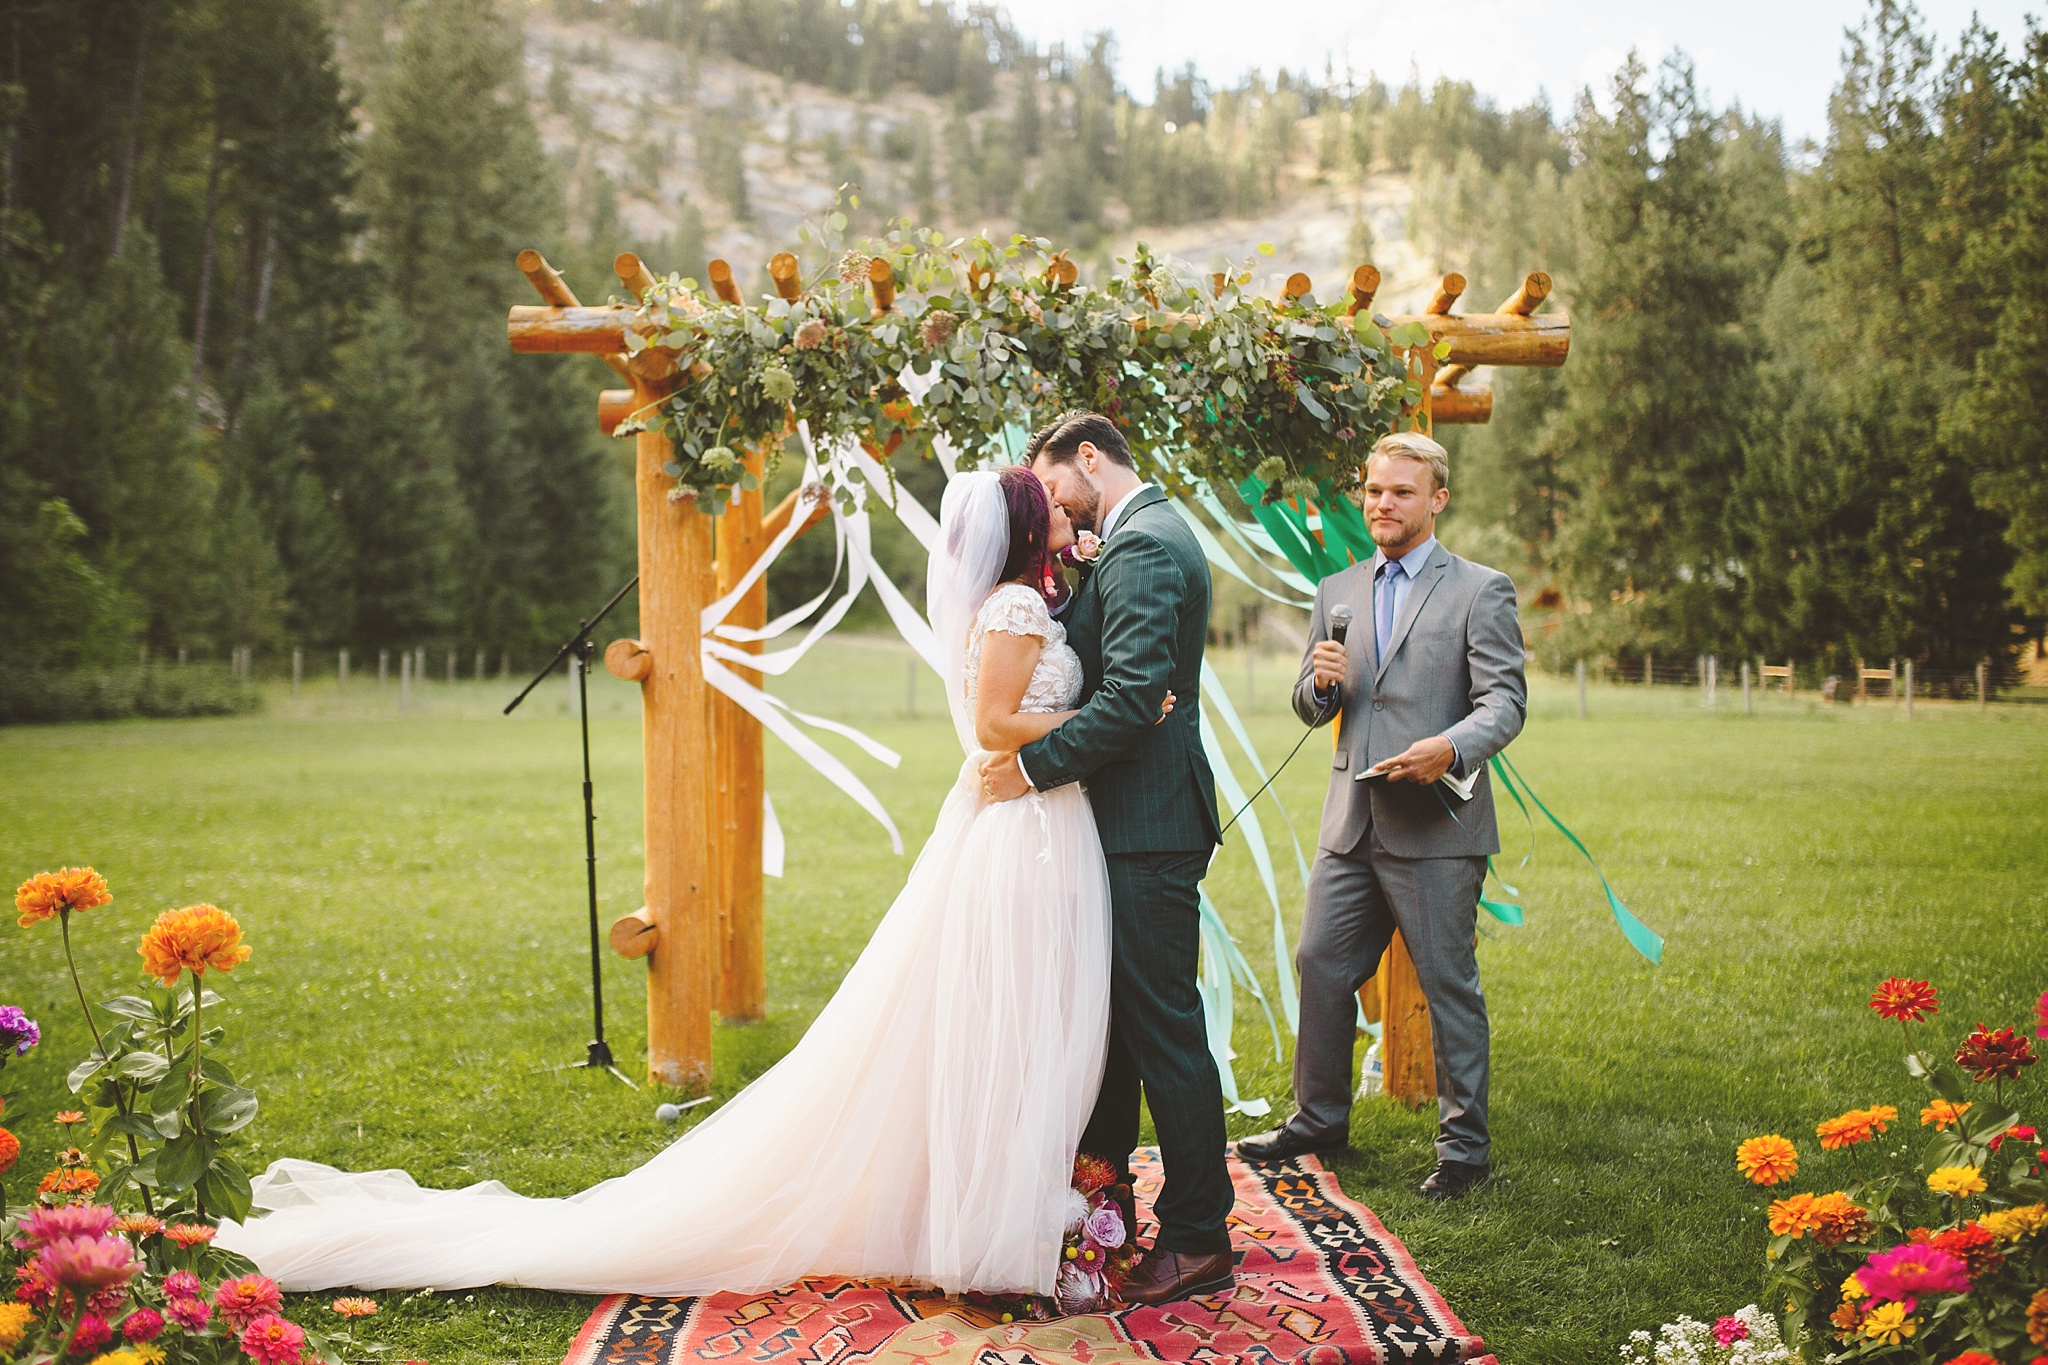 first kiss at wedding in woods of washington